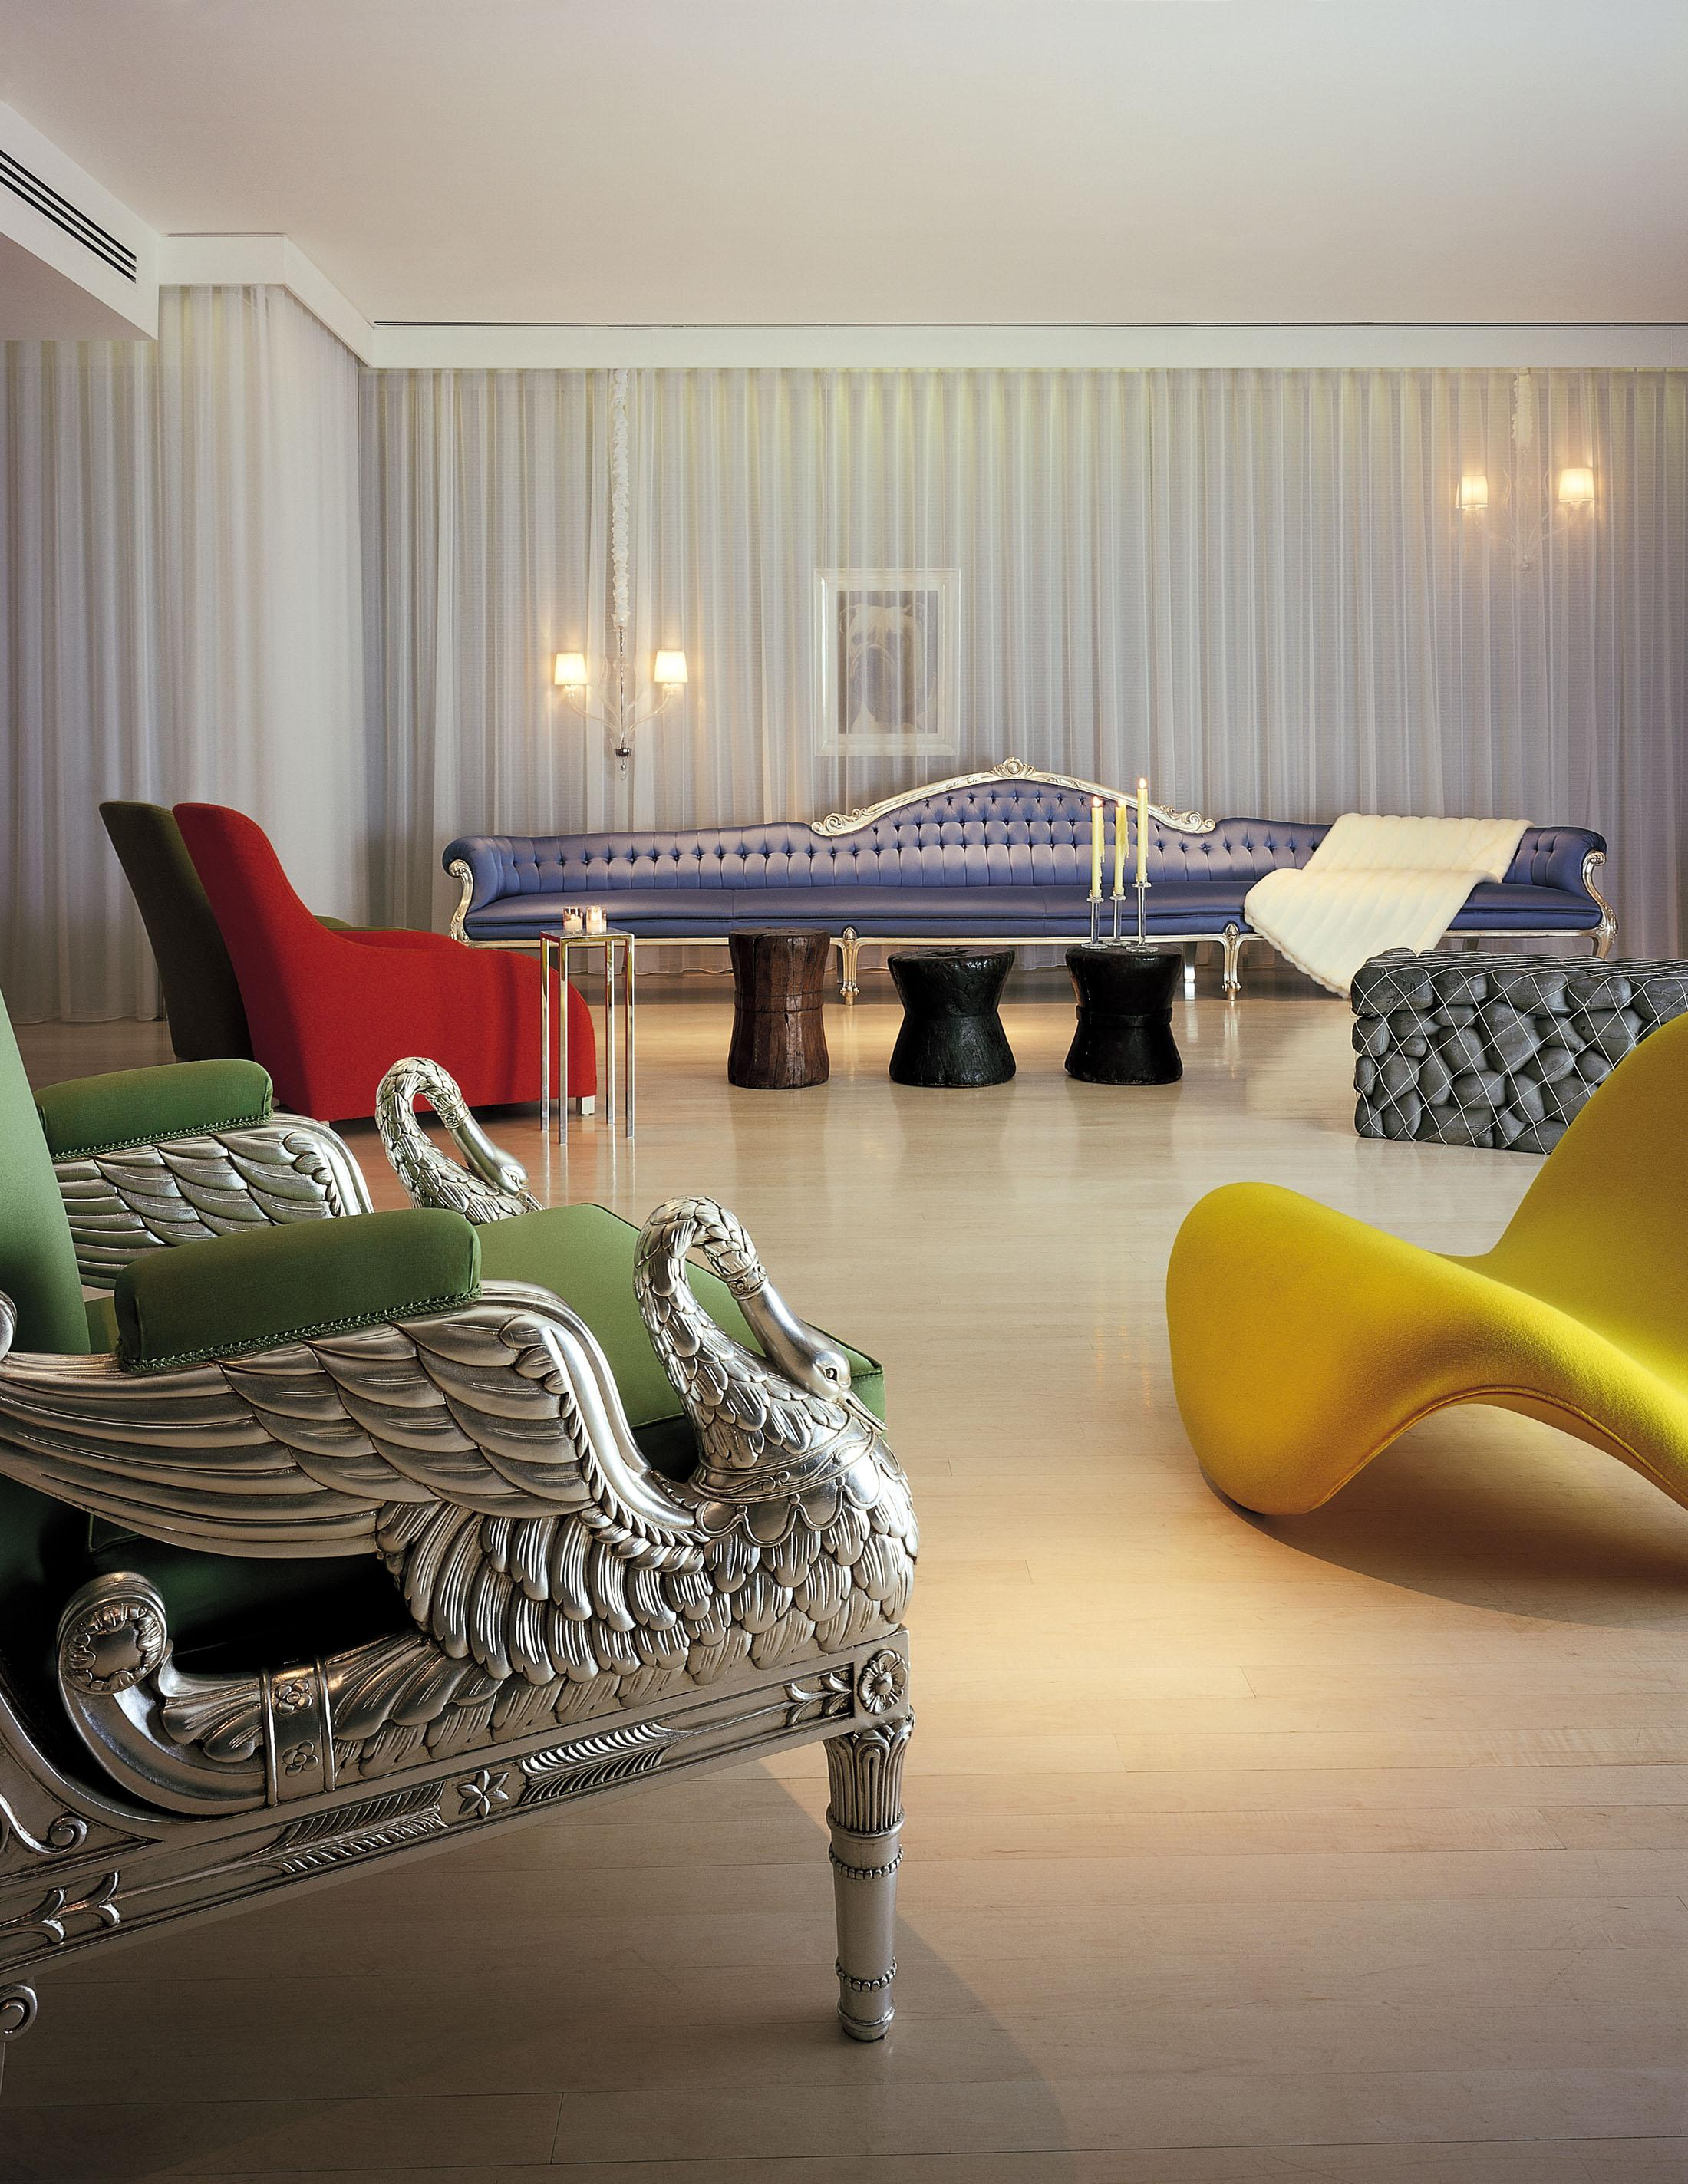 hotel living space with silver chair shaped like a bird